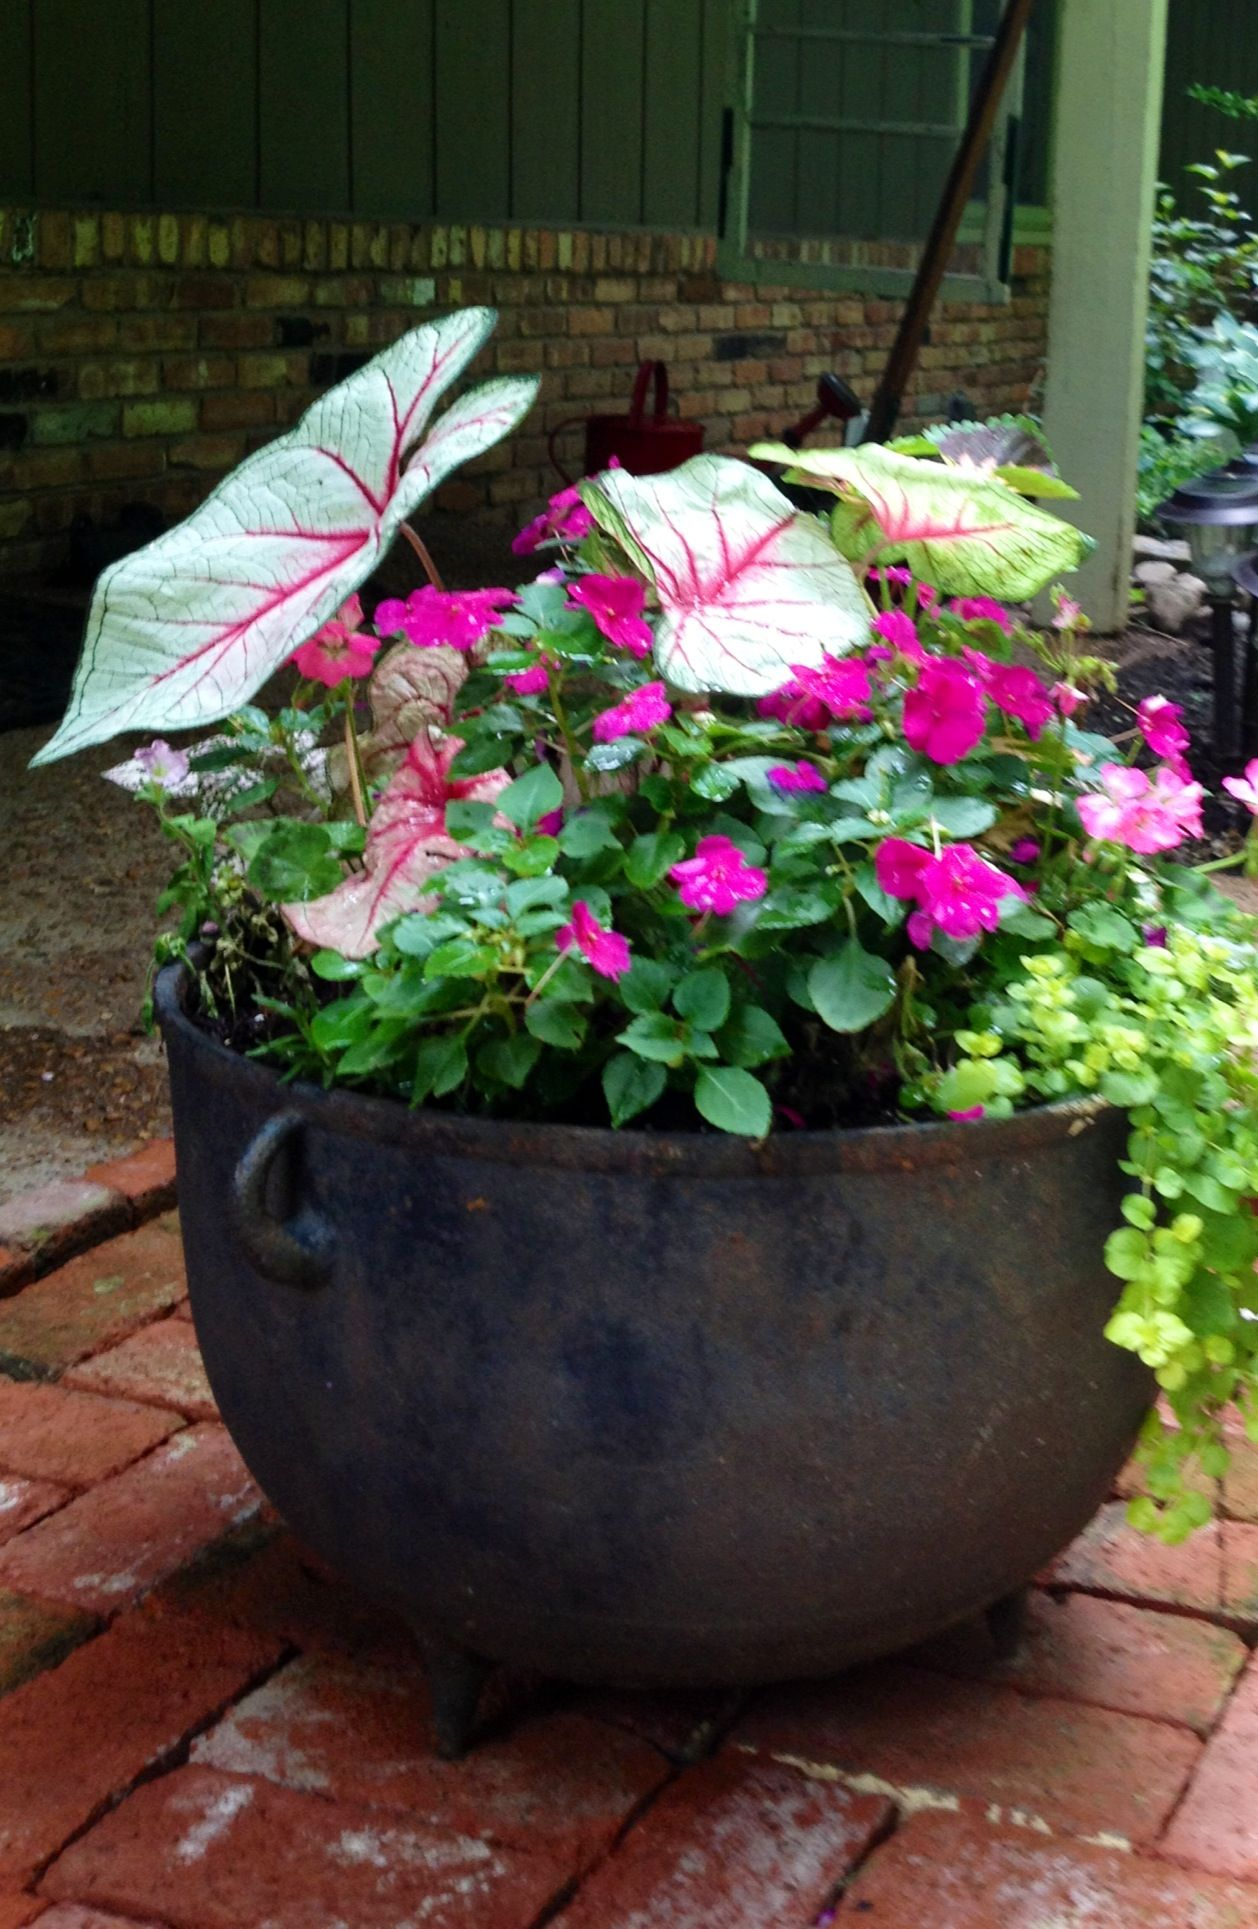 Pin By Maureen Sterner On My Garden Tour Iron Planters Antique Cast Iron Cast Iron Kettle